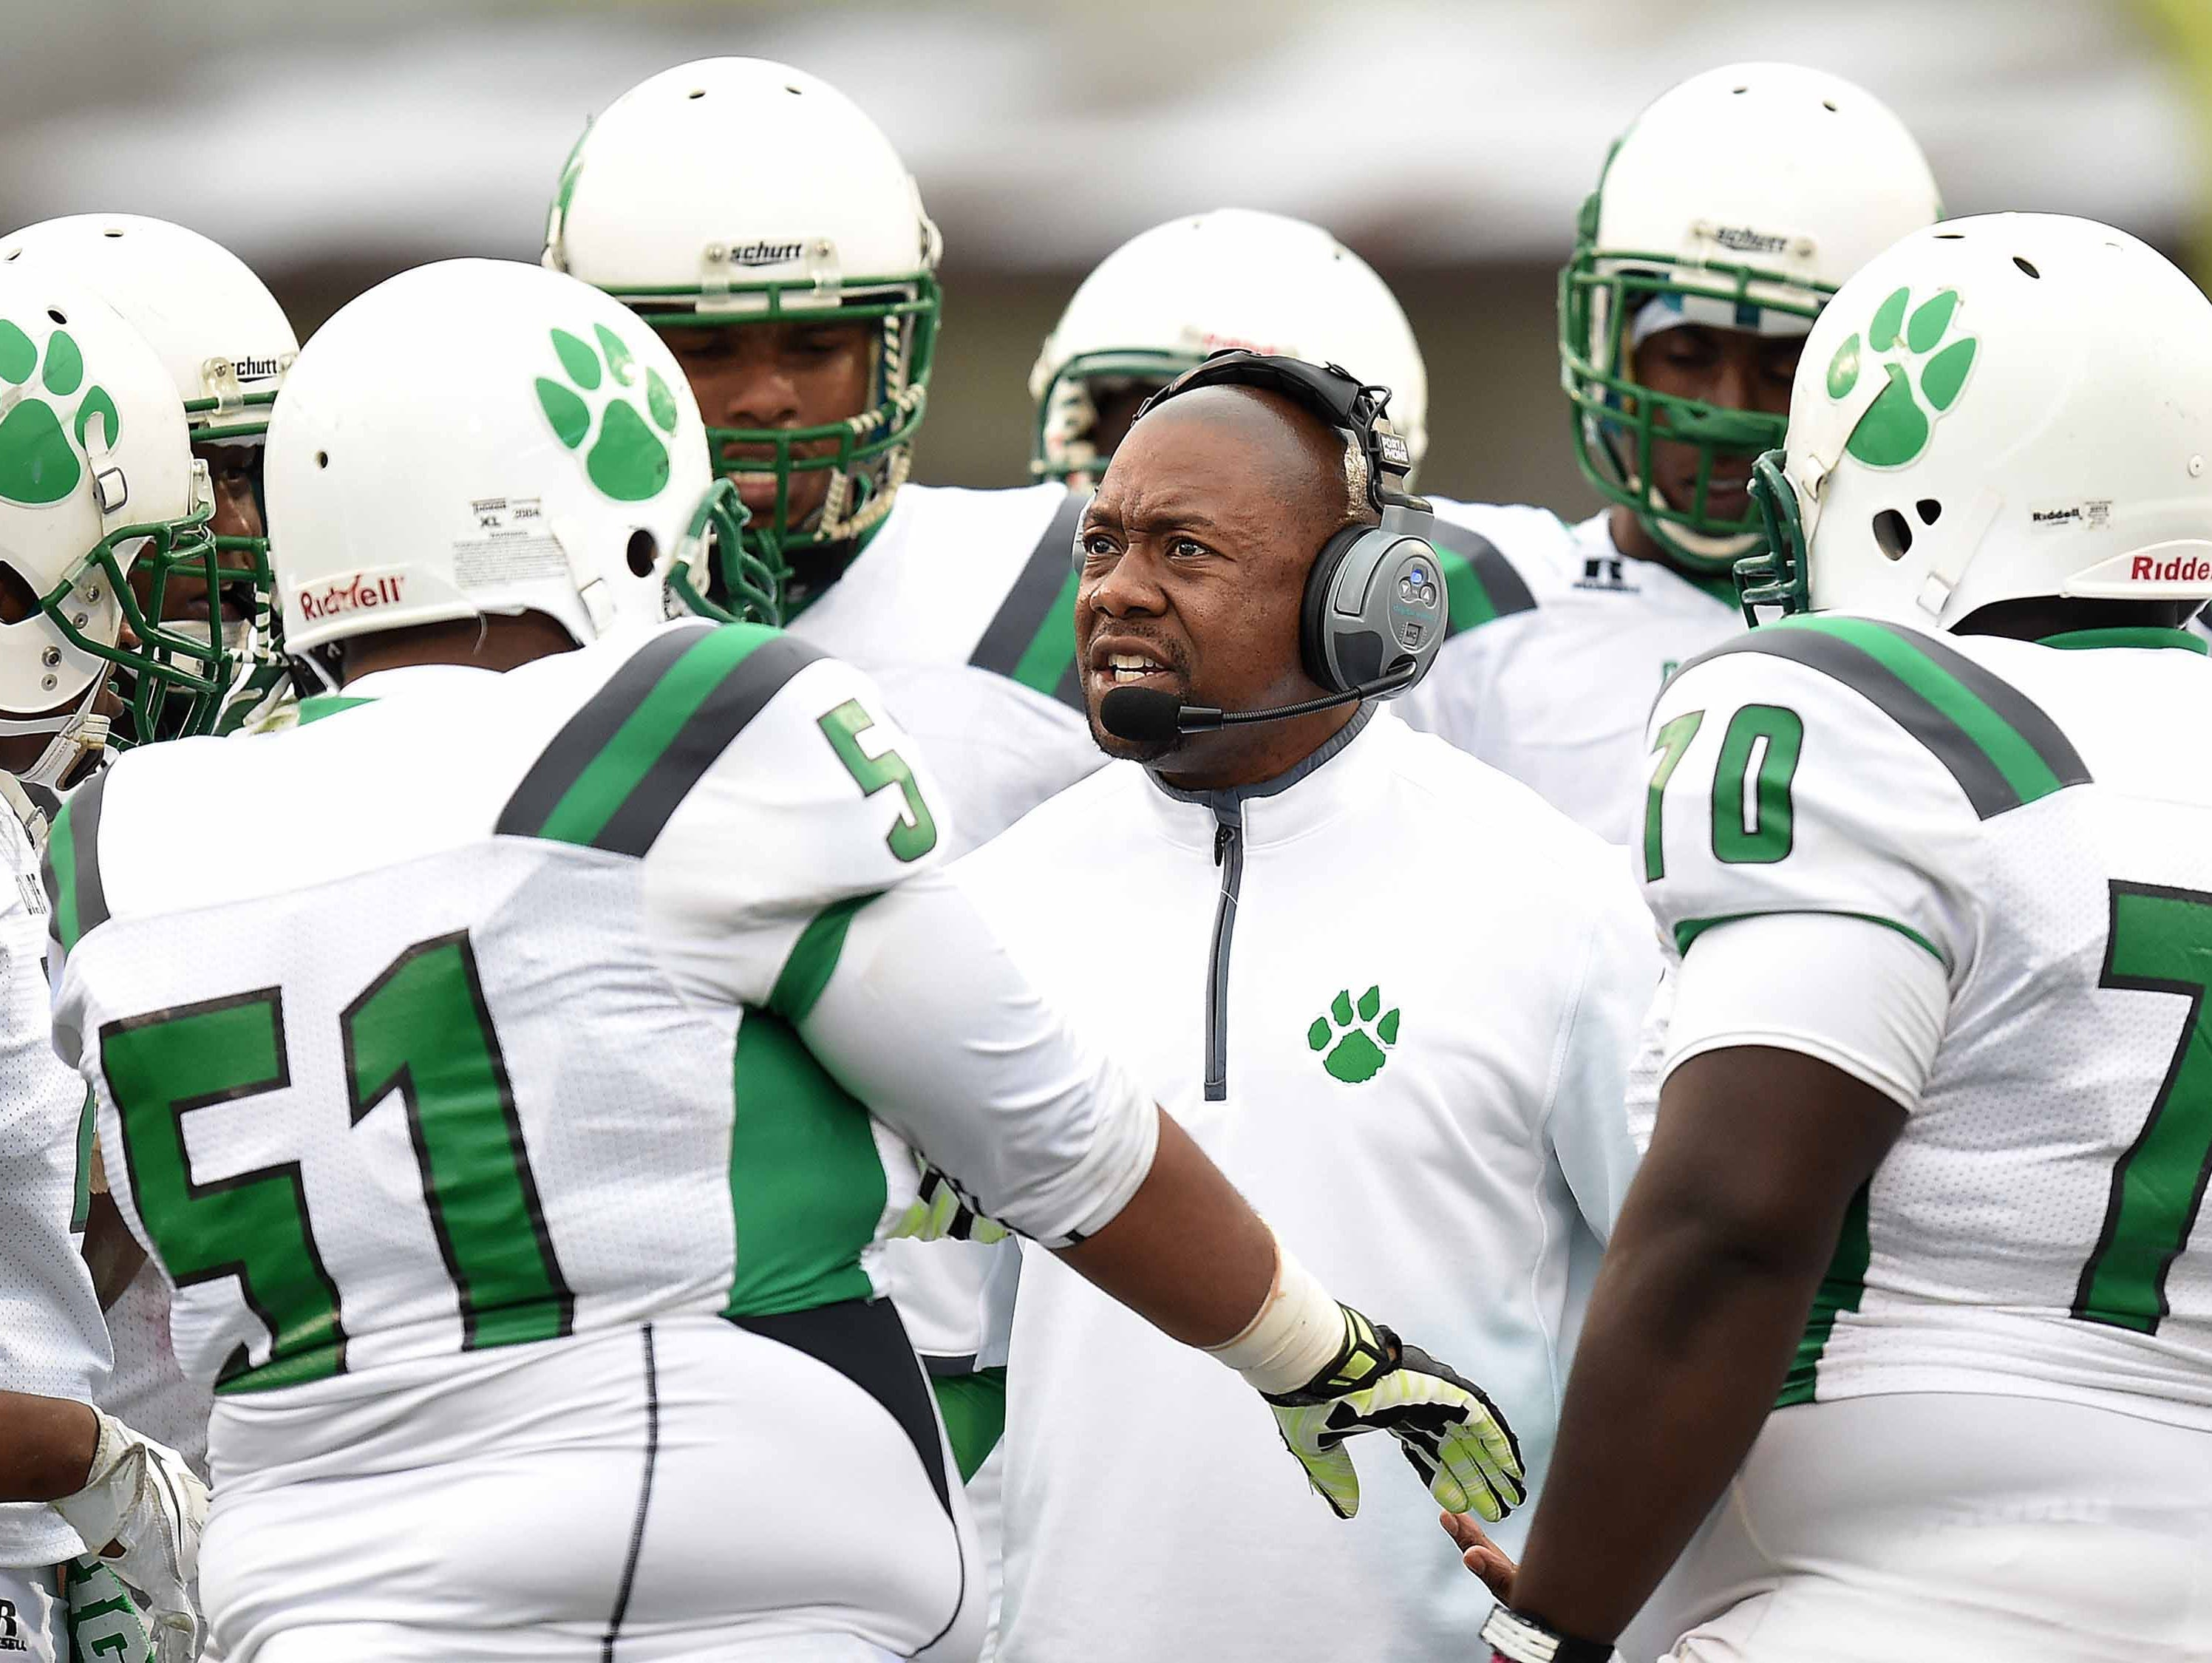 Collins head coach Ryan Earnest will try to lead his team to a second-straight MHSAA 3A State Championship against a familiar Charleston team at 11 a.m. Saturday in Oxford.